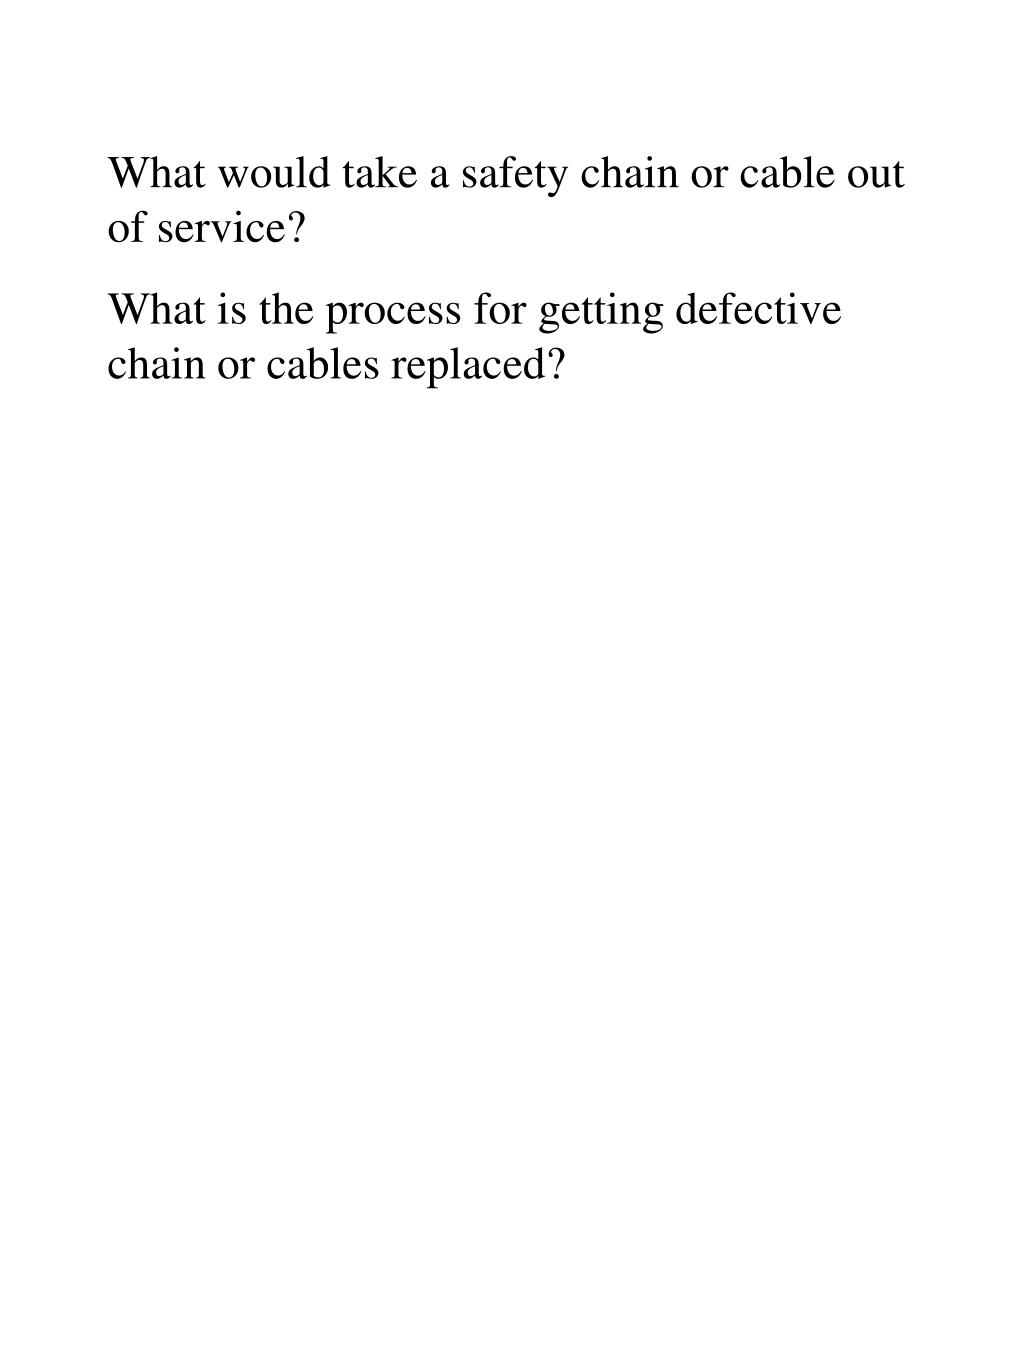 What would take a safety chain or cable out of service?